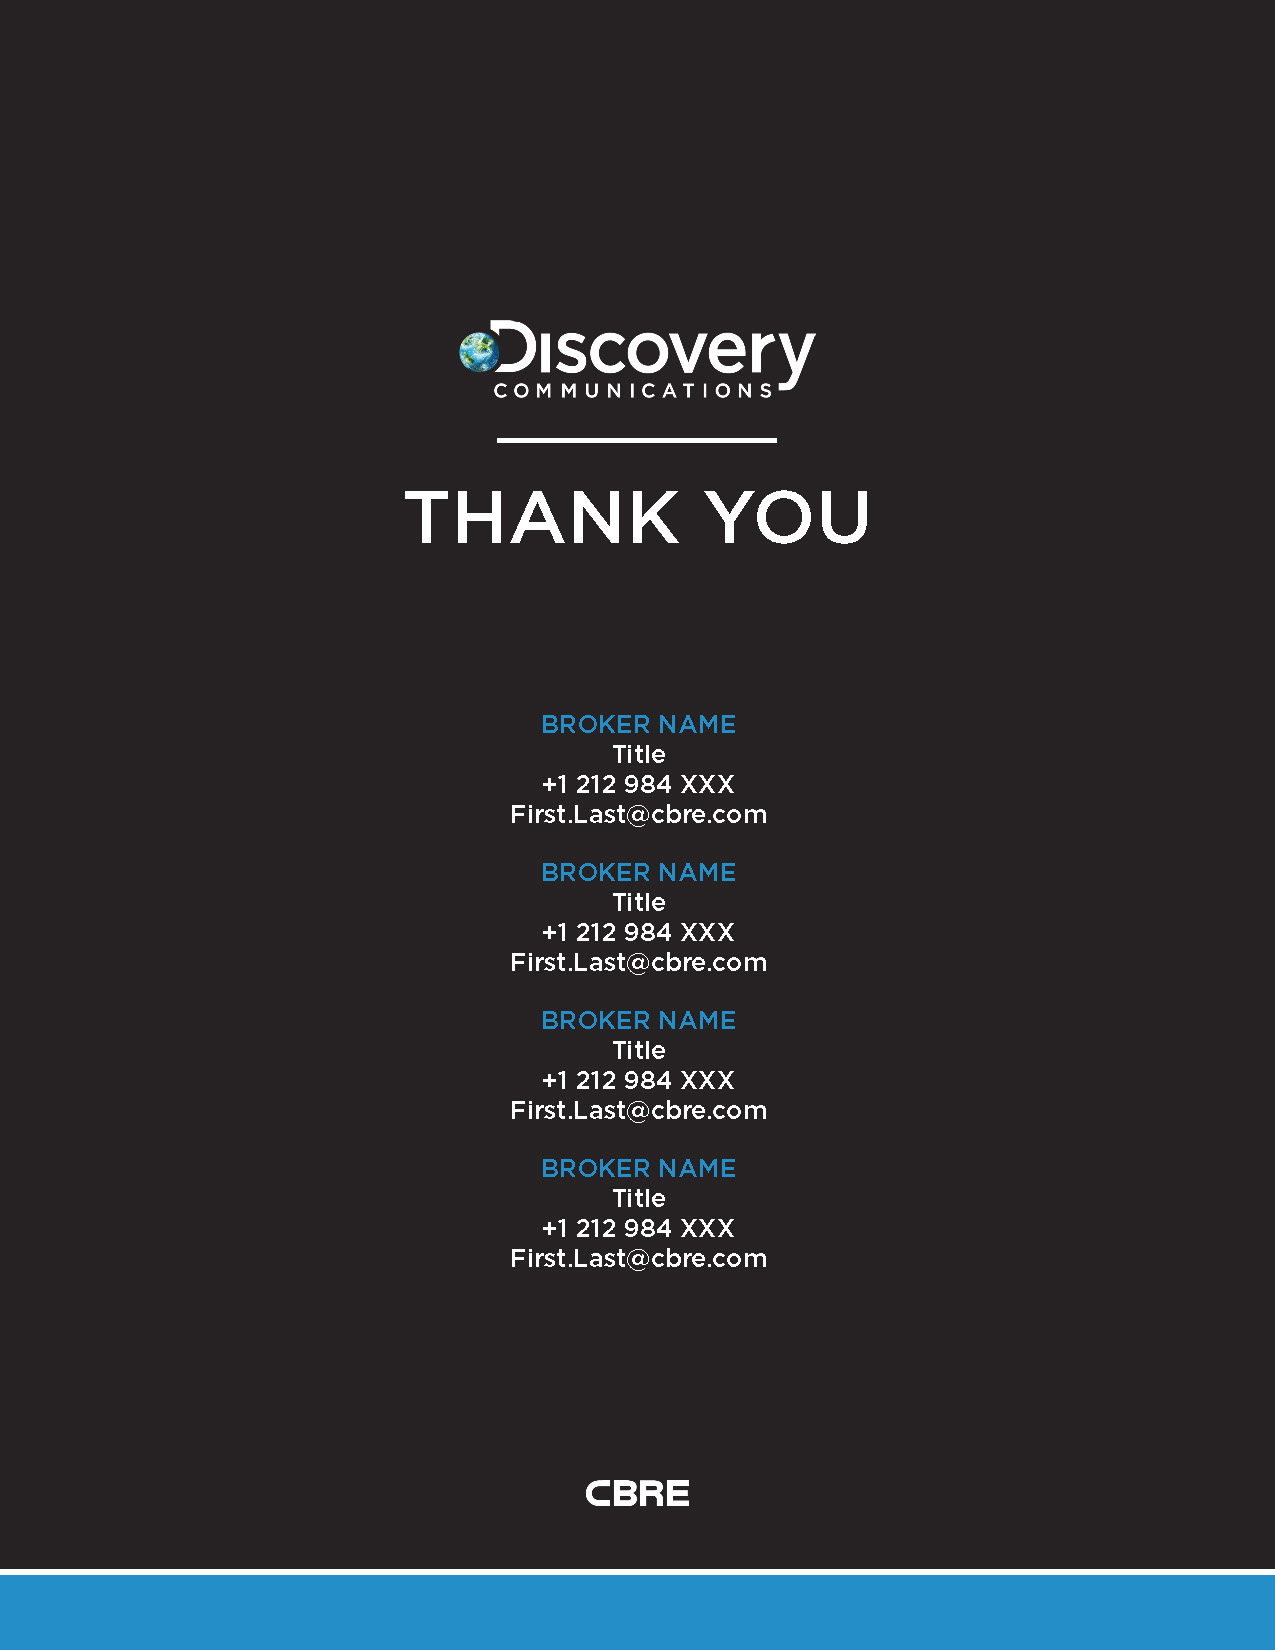 Discovery Communications_PJM_02-14-18_Page_13.jpg